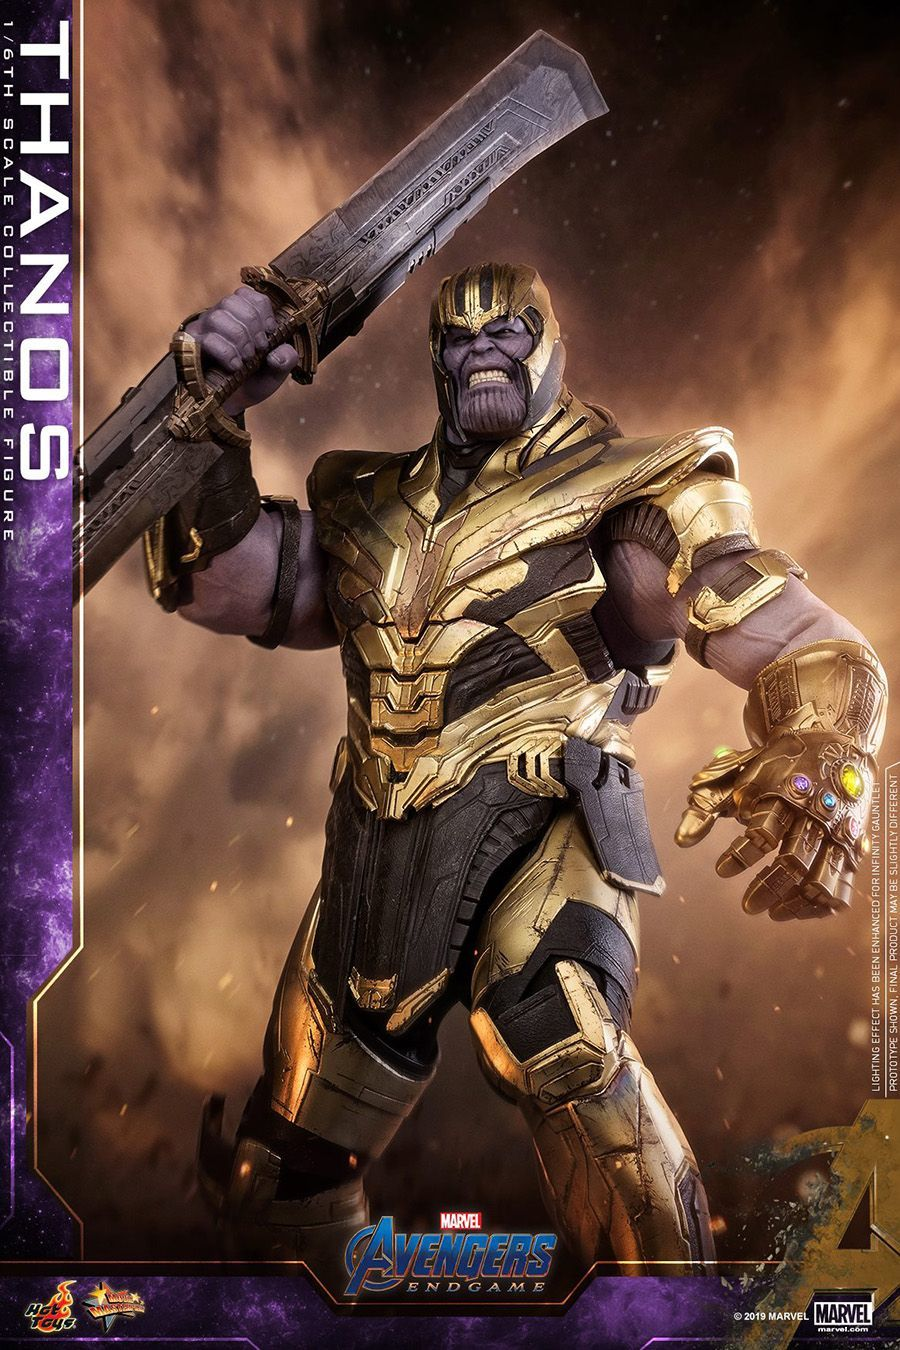 Thanos' New Look And Weapon For 'Avengers: Endgame' Revealed In Detail By Hot Toys